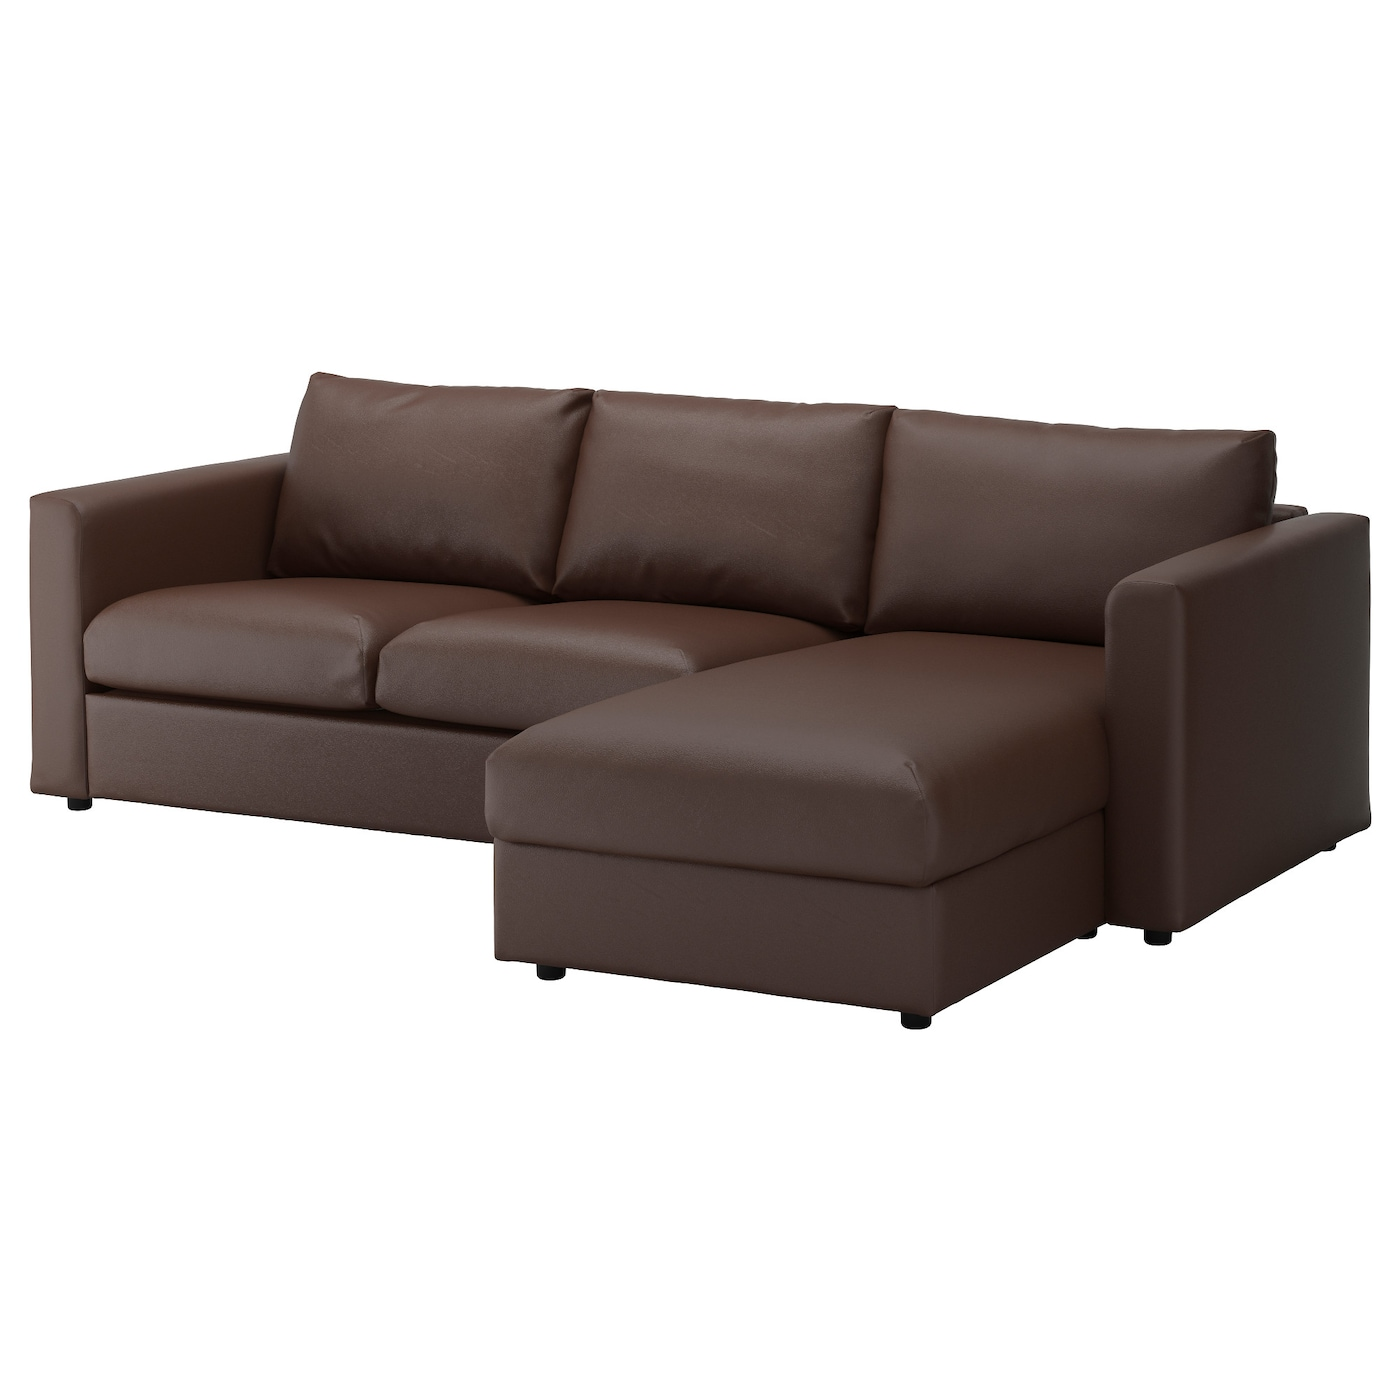 vimle 3 seat sofa with chaise longue farsta dark brown ikea. Black Bedroom Furniture Sets. Home Design Ideas